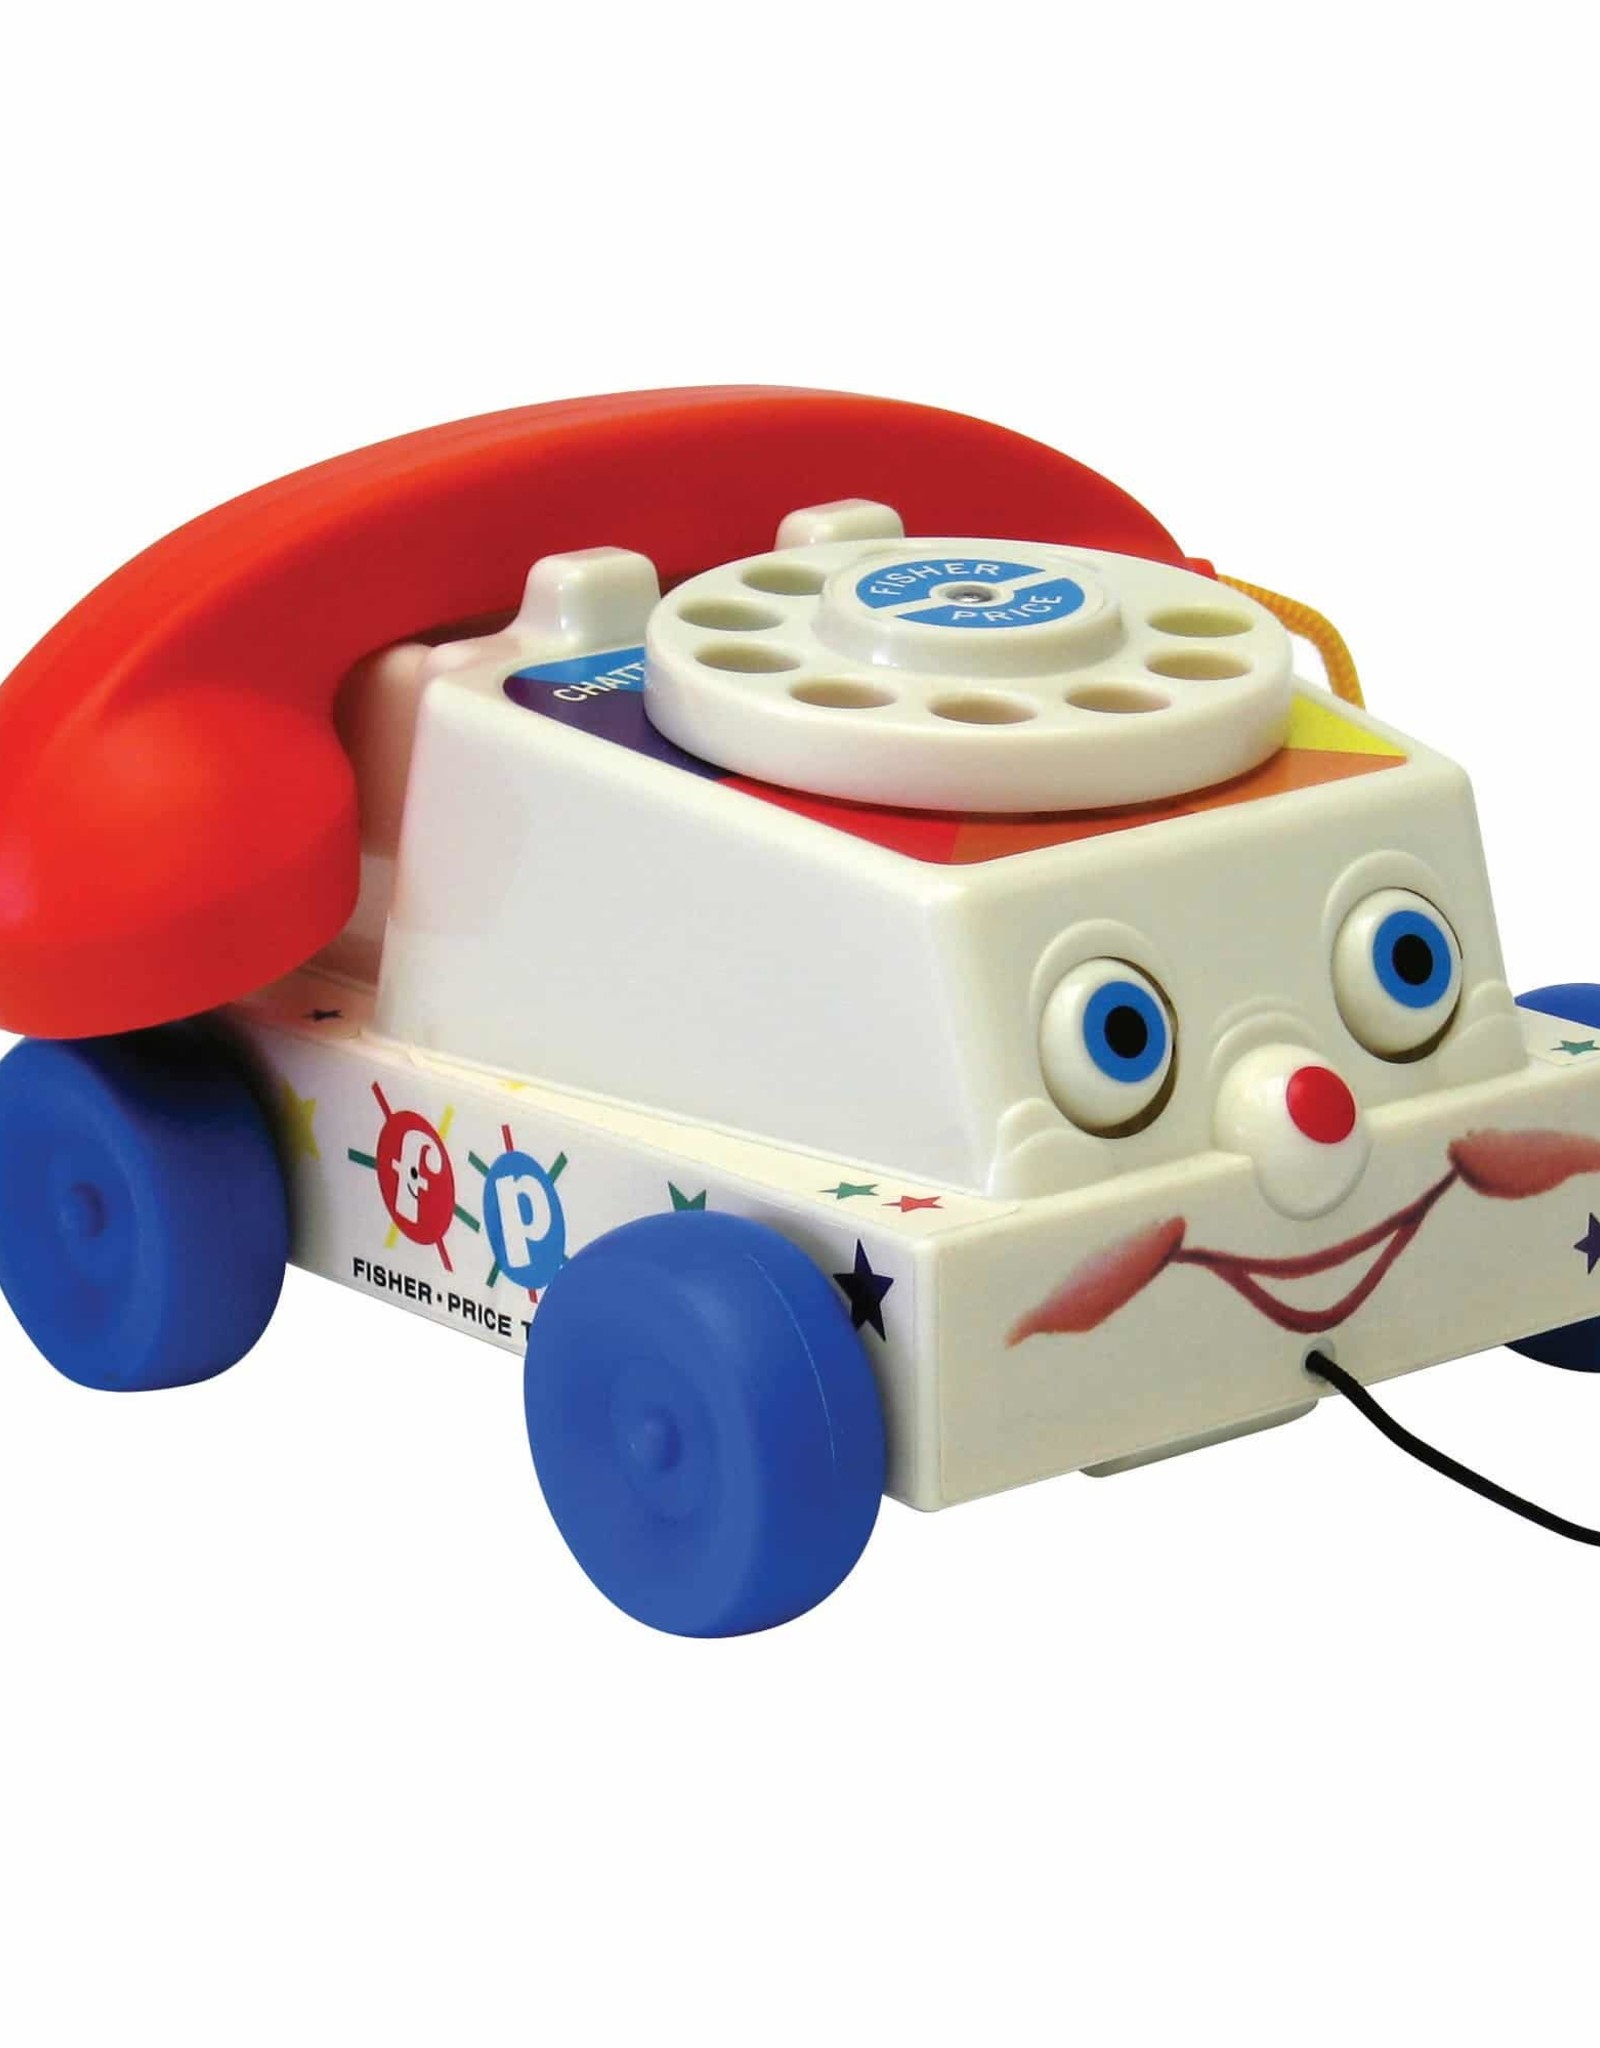 Schylling Price Chatter Phone